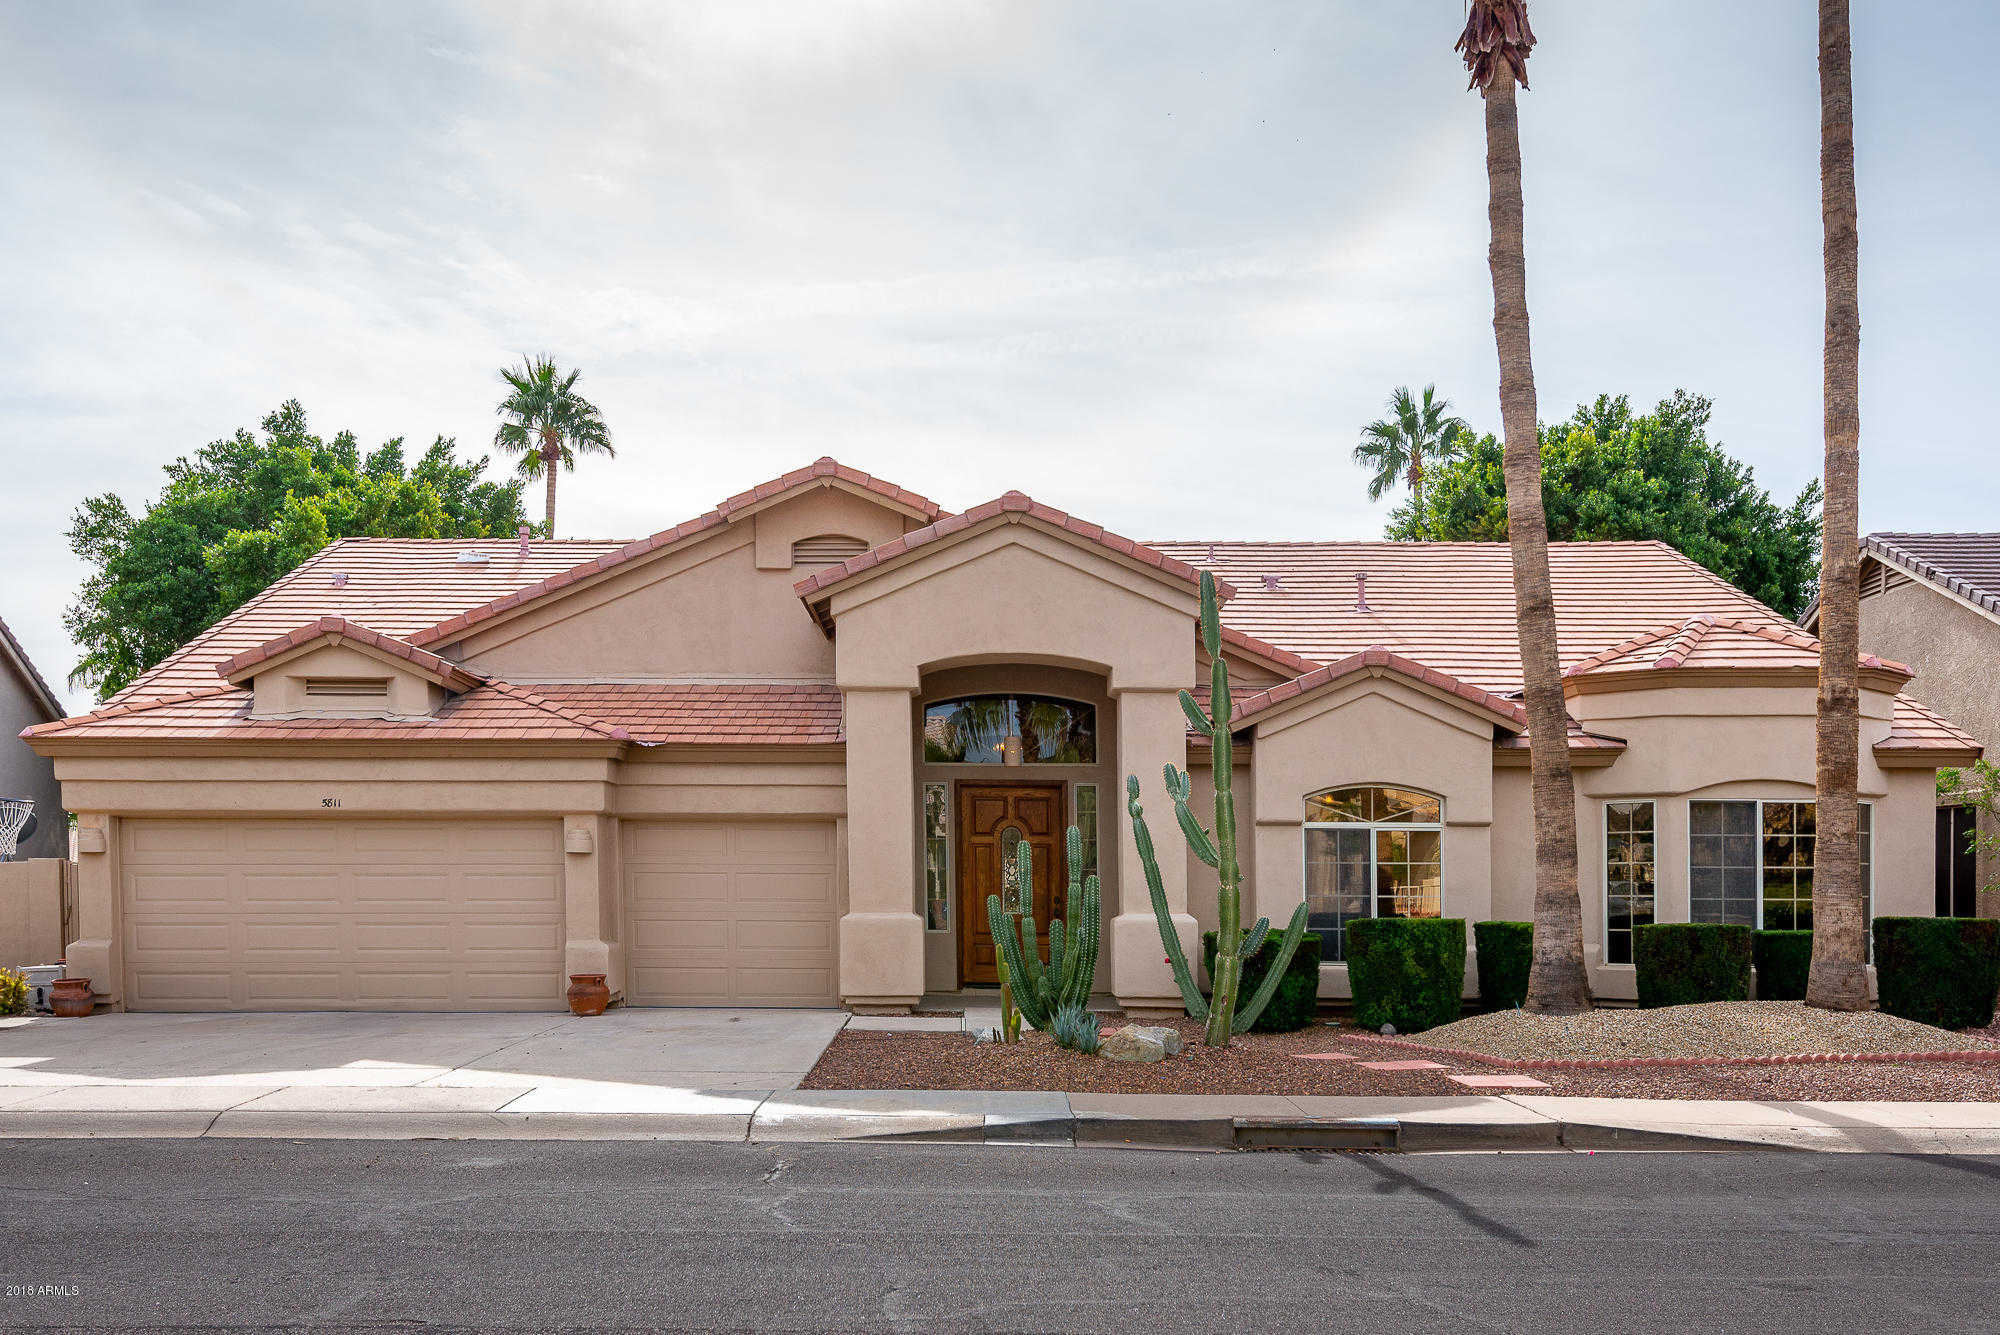 $490,000 - 4Br/3Ba - Home for Sale in Arrowhead Lakes 1 Replat Lt 1-204 A-h J-n P-r, Glendale